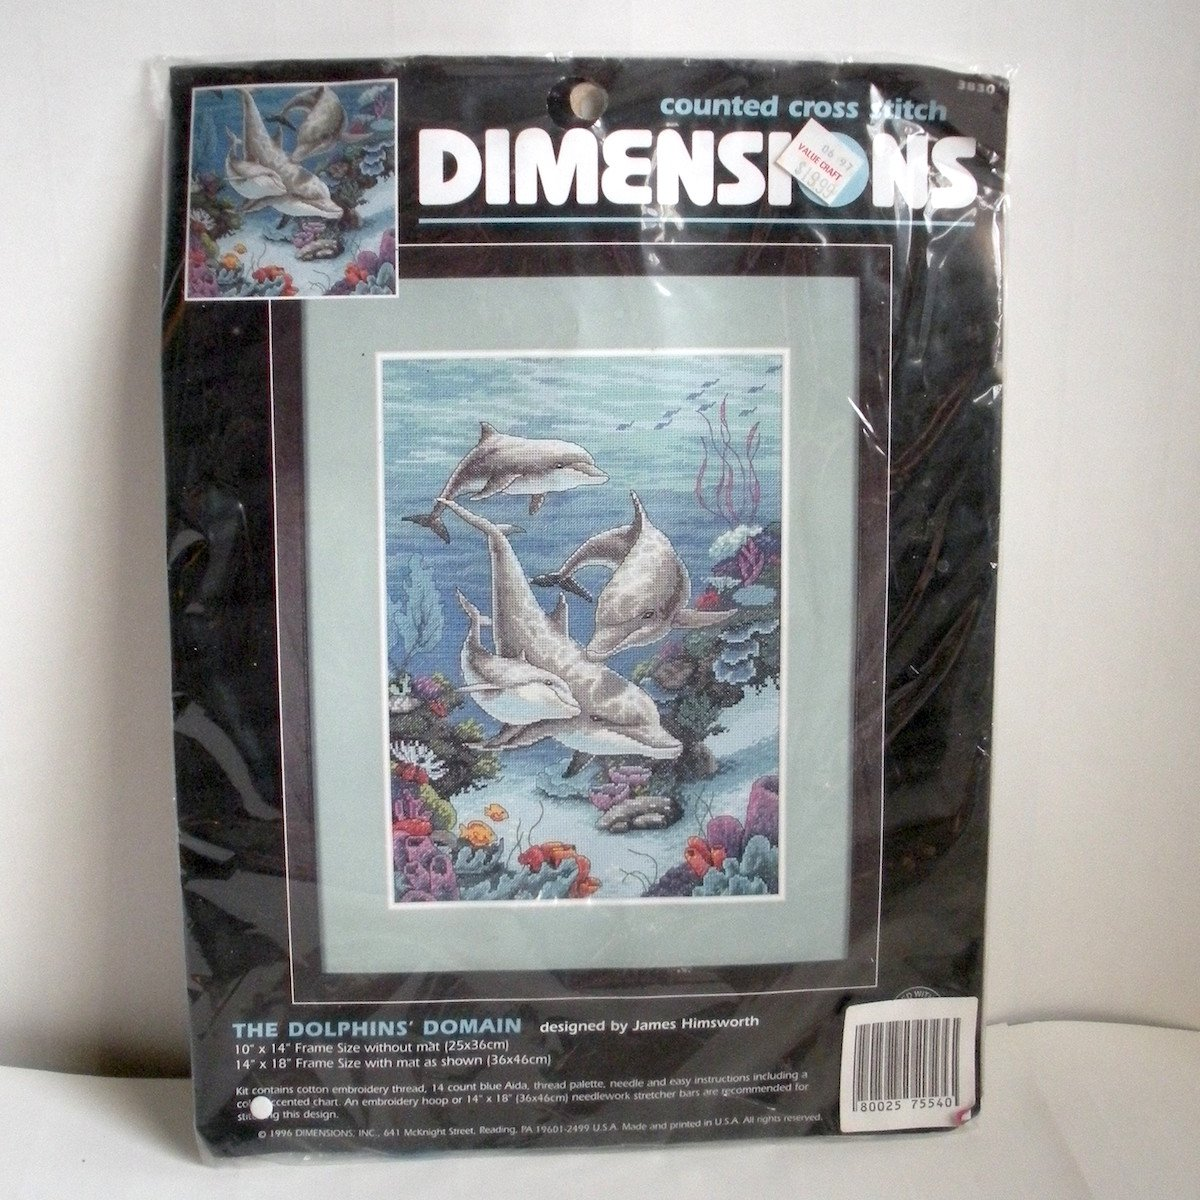 Blue Dimensions Dolphins/' DOMAIN